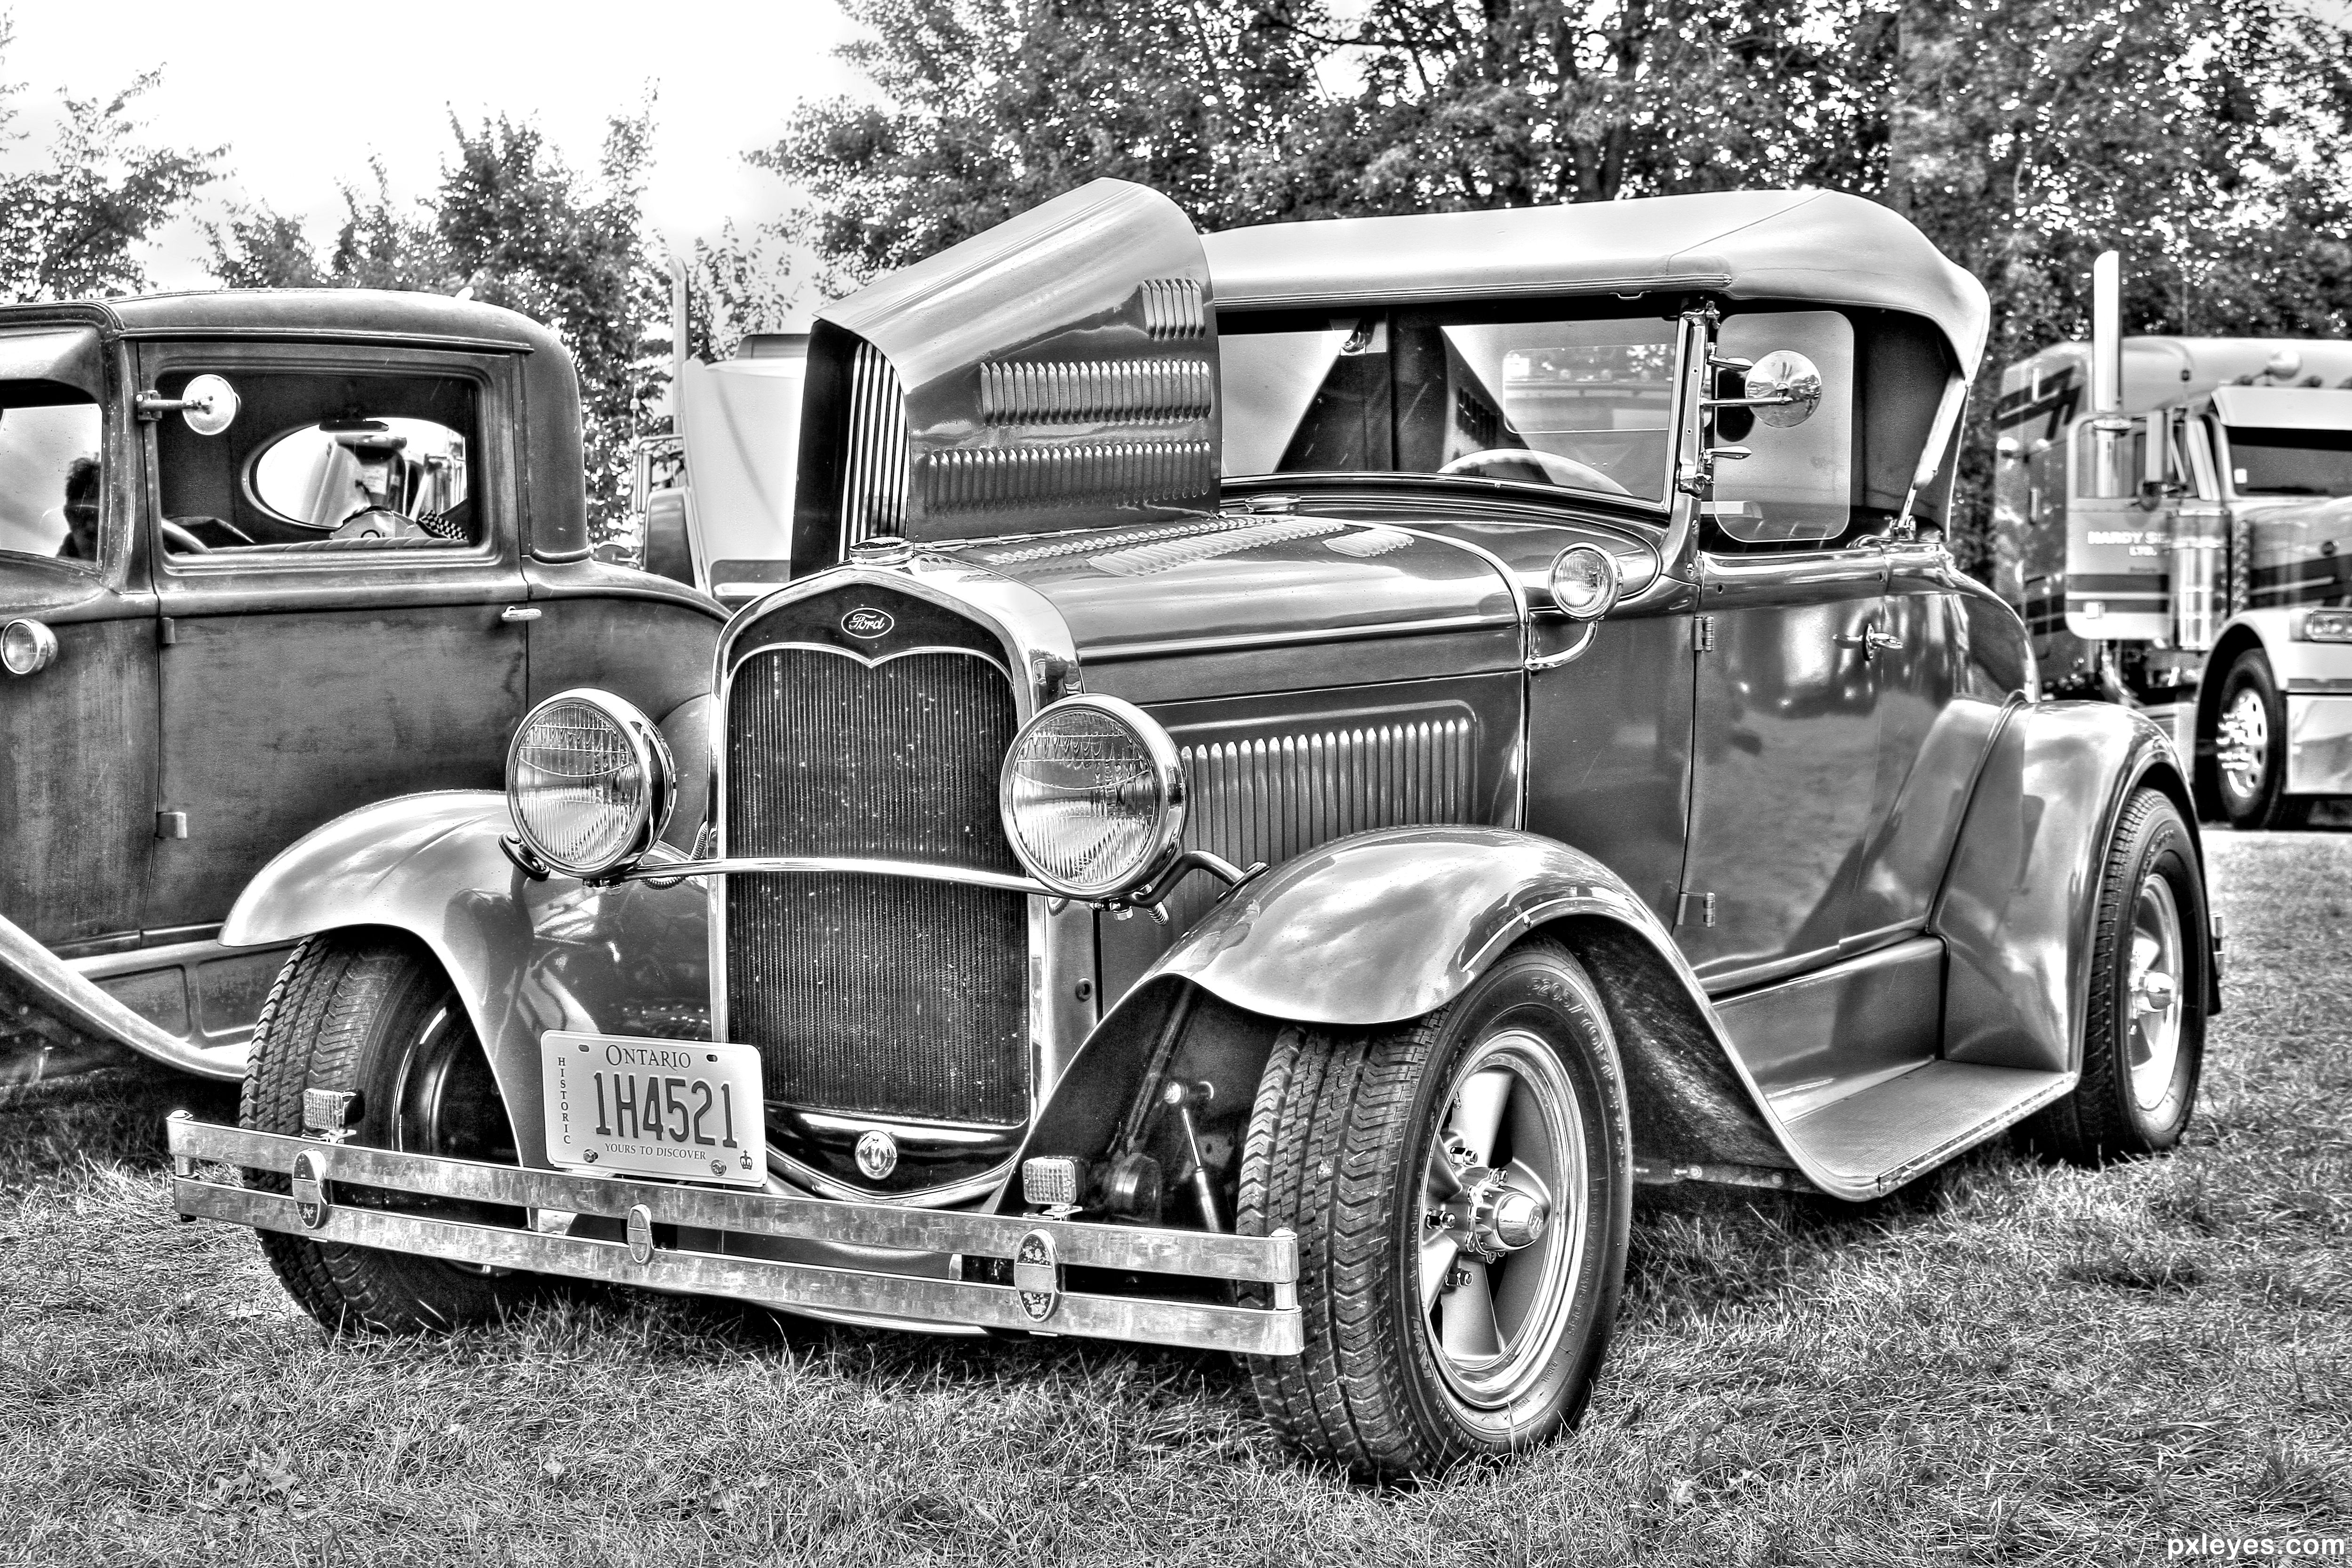 Old Car picture, by chieflong for: bw cars photography contest ...